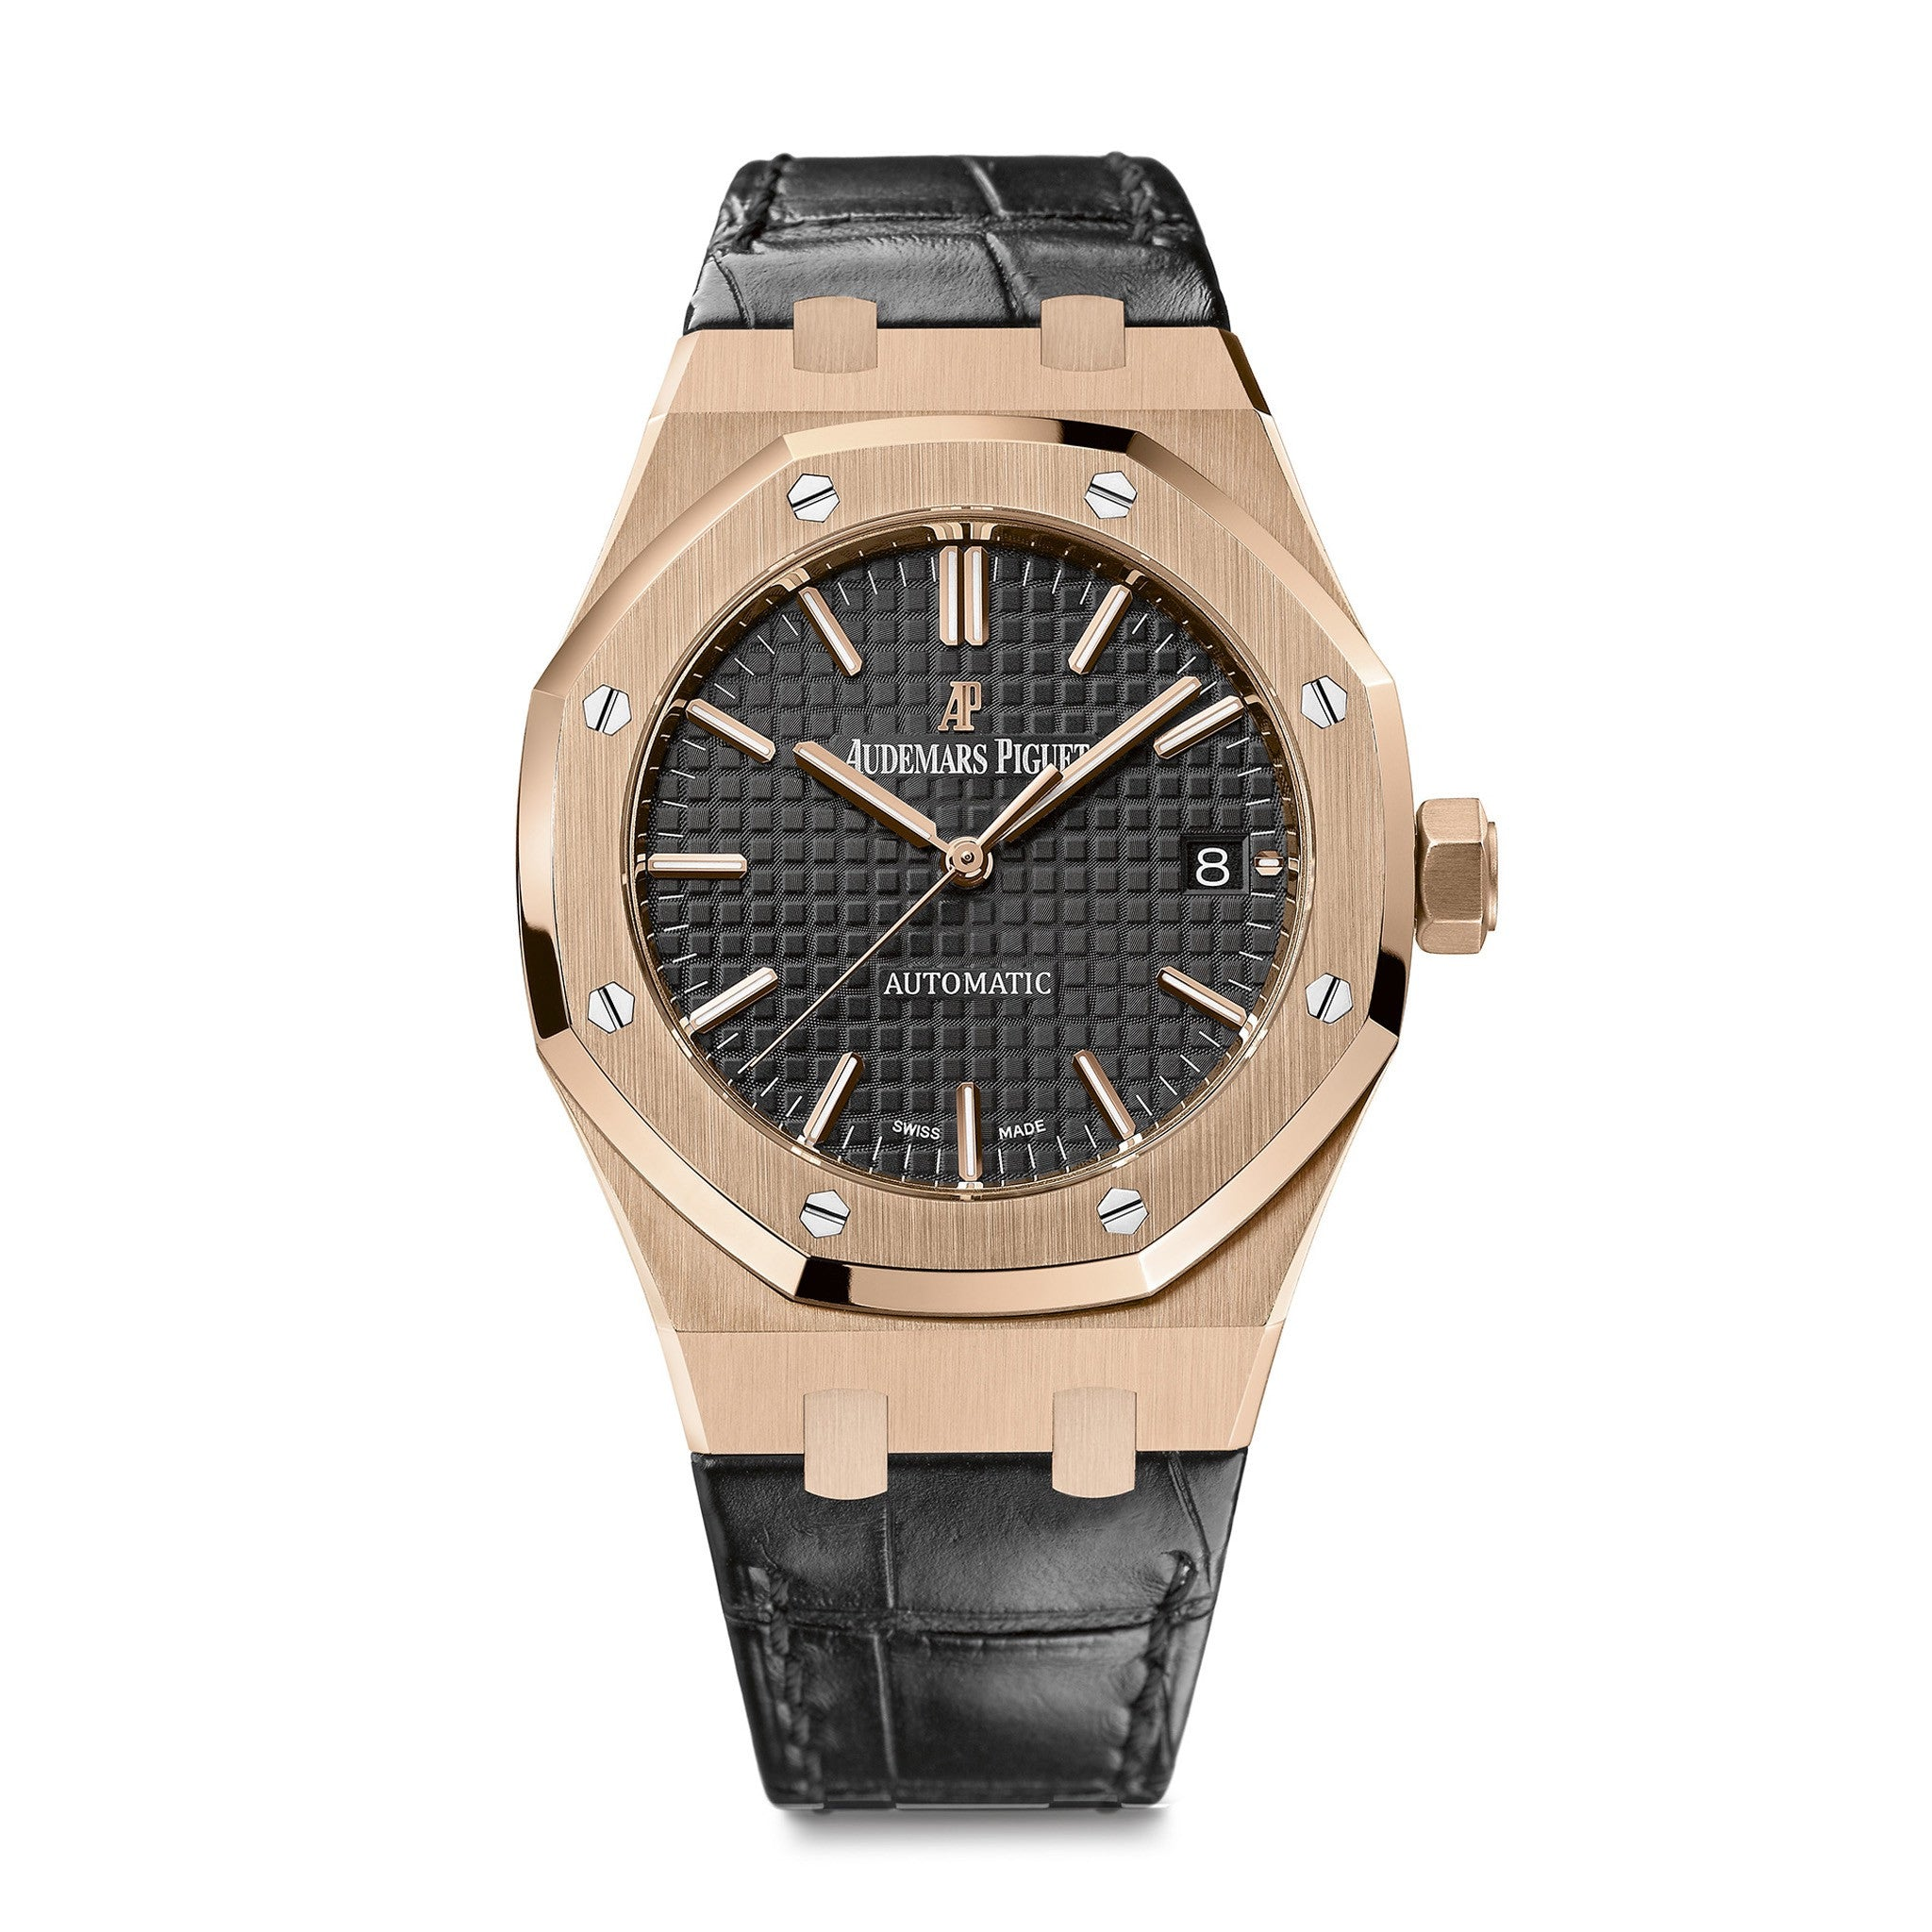 Royal Oak Ladies Selfwinding 15450OR.OO.D002CR.01 - Audemars Piguet